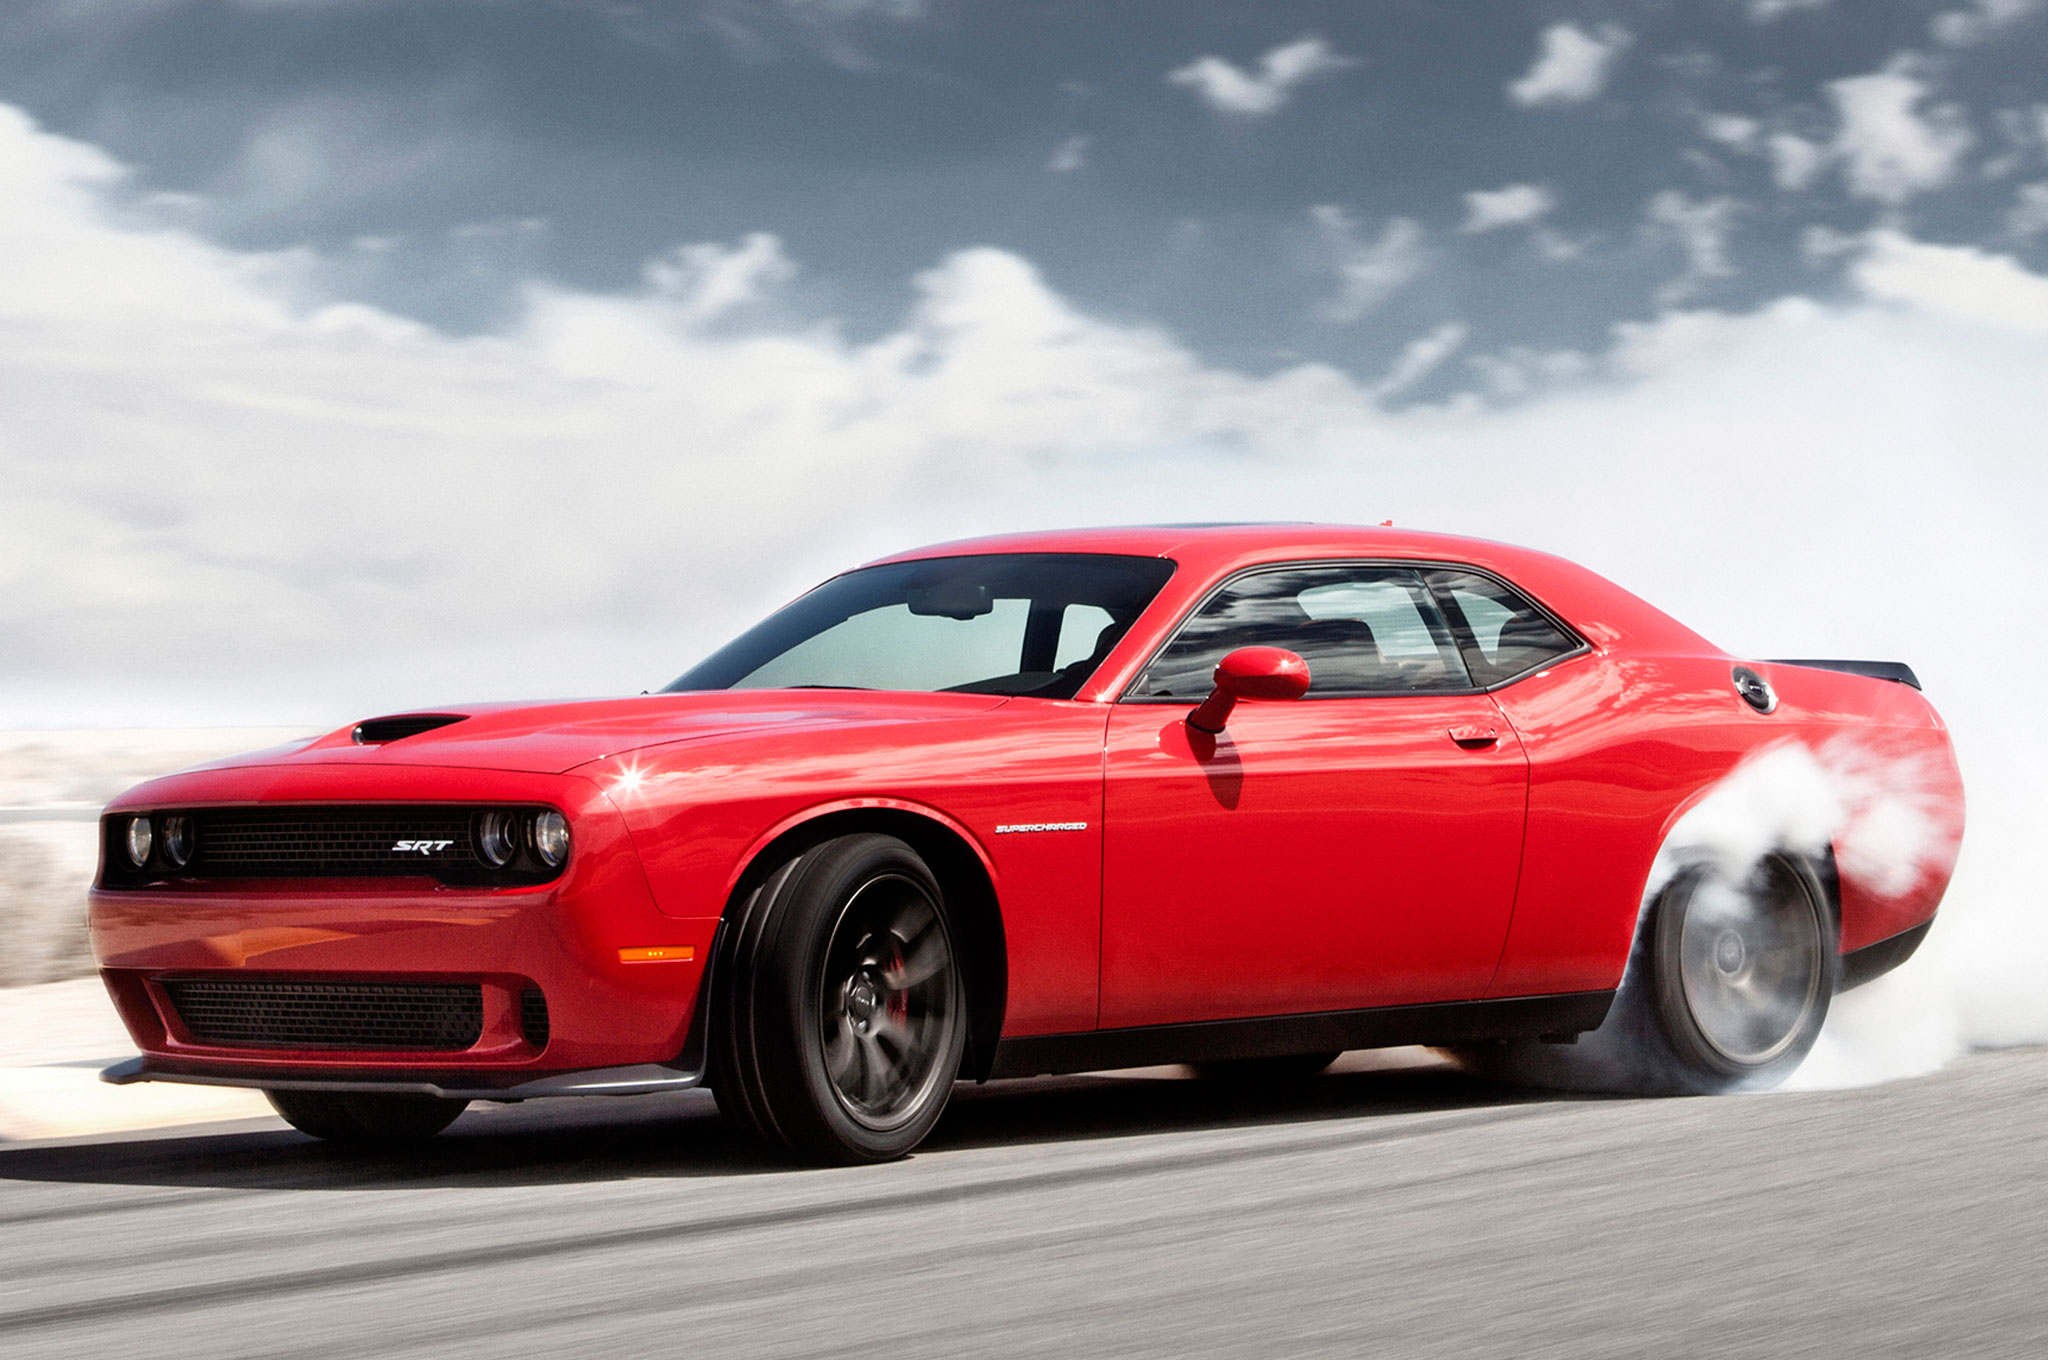 2016 Dodge Challenger Hellcat Wallpaper >> 2015 Dodge Challenger Srt Hellcat Makes 707 Hp